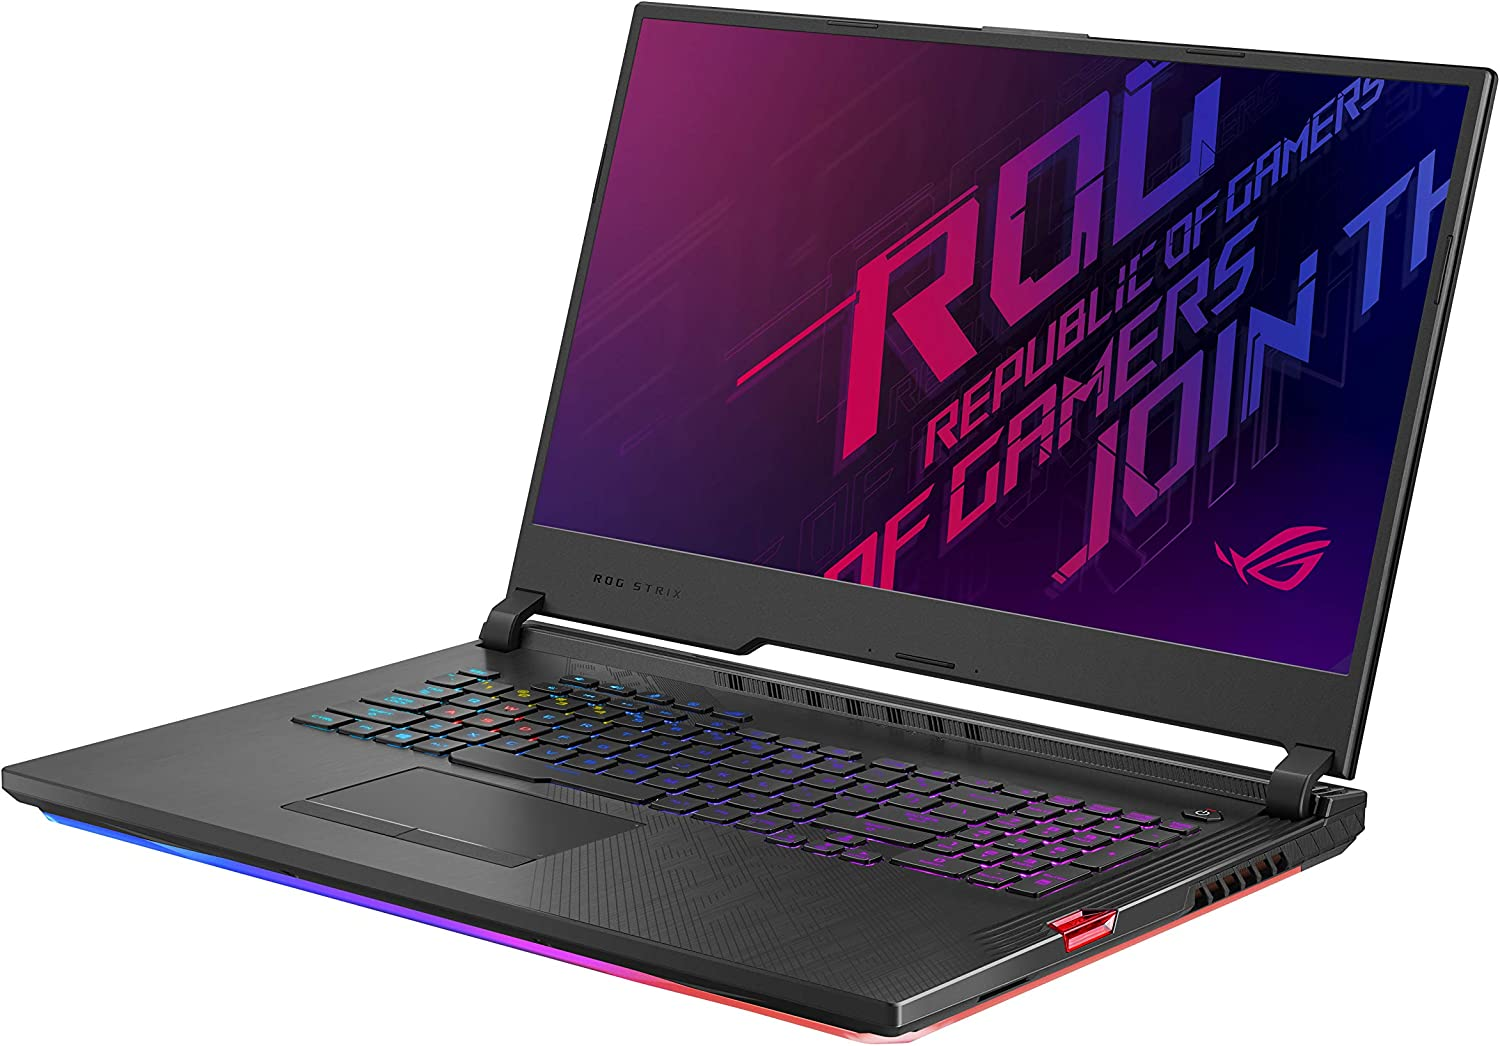 "Asus ROG Strix Hero III (2019) Gaming Laptop, 17.3"" 144Hz IPS Type FHD, NVIDIA GeForce RTX 2060, Intel Core i7-9750H, 16GB DDR4 RAM, 512GB PCIe Nvme SSD, Per-Key RGB KB, Windows 10 Home, G731GV-DB74"